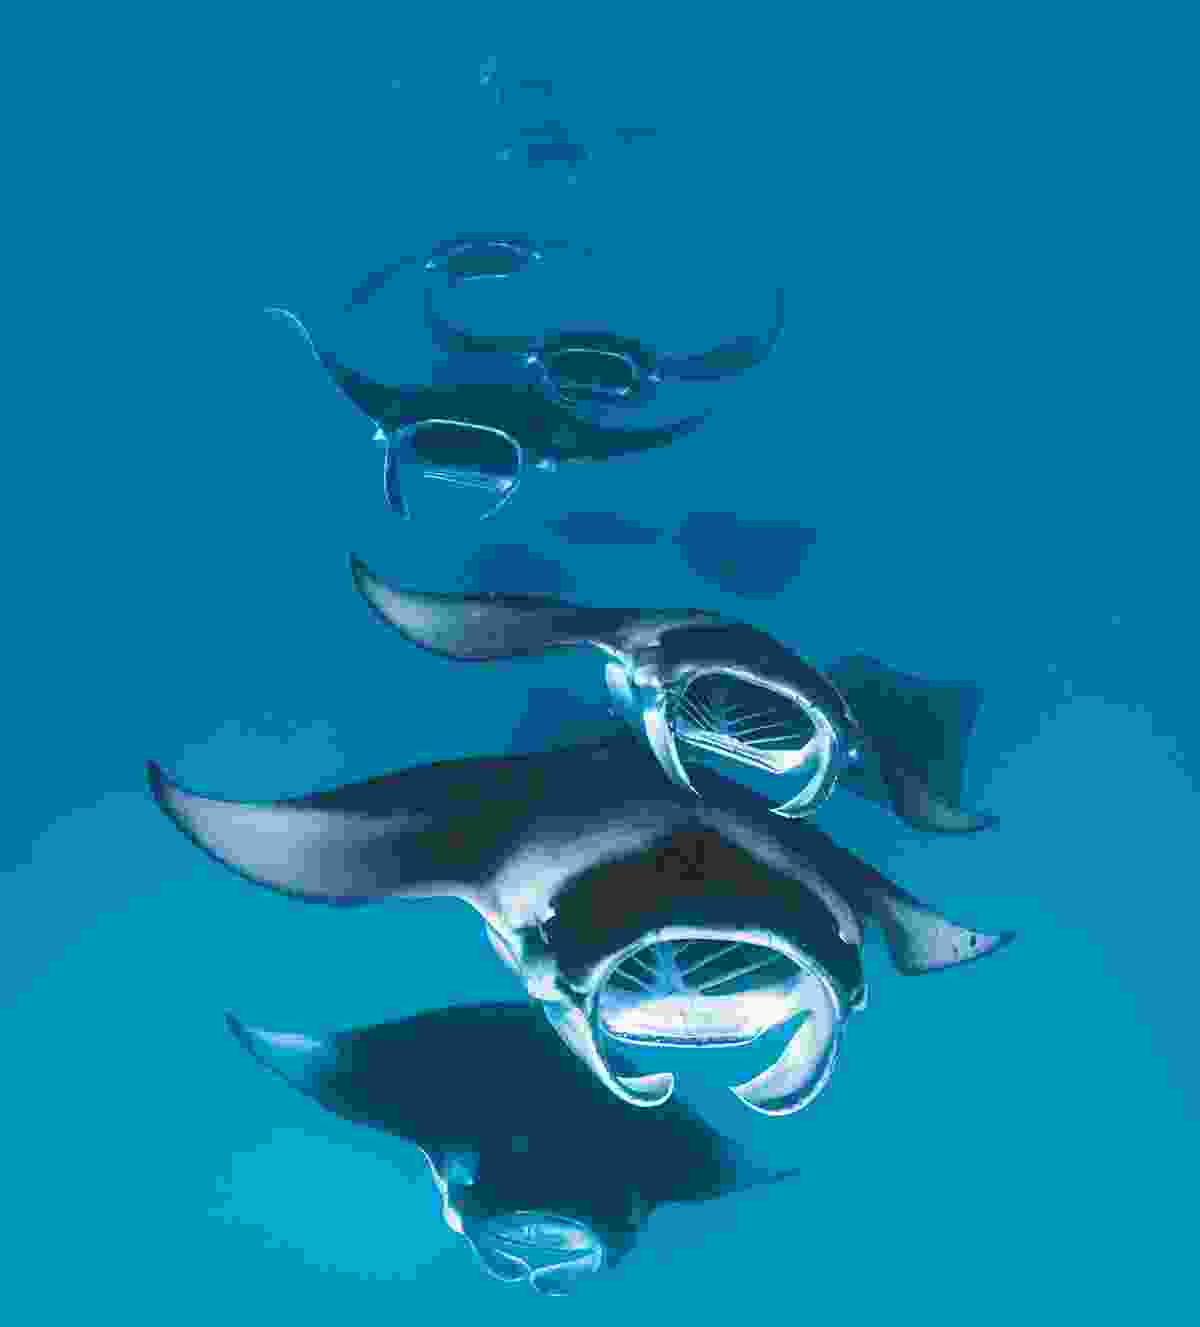 Manta rays in formation (Doug Perrine/naturepl.com)